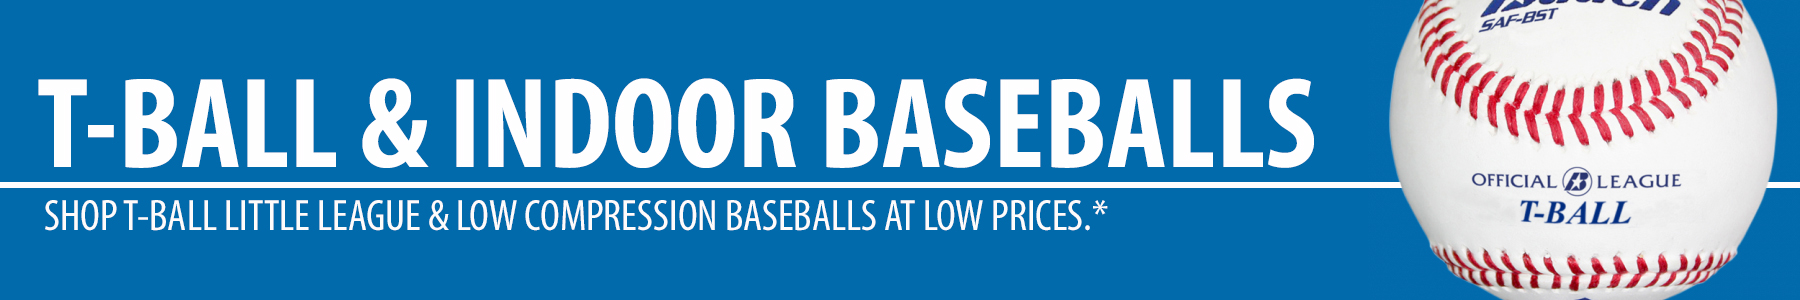 T Ball Baseballs - Low Compression Baseballs